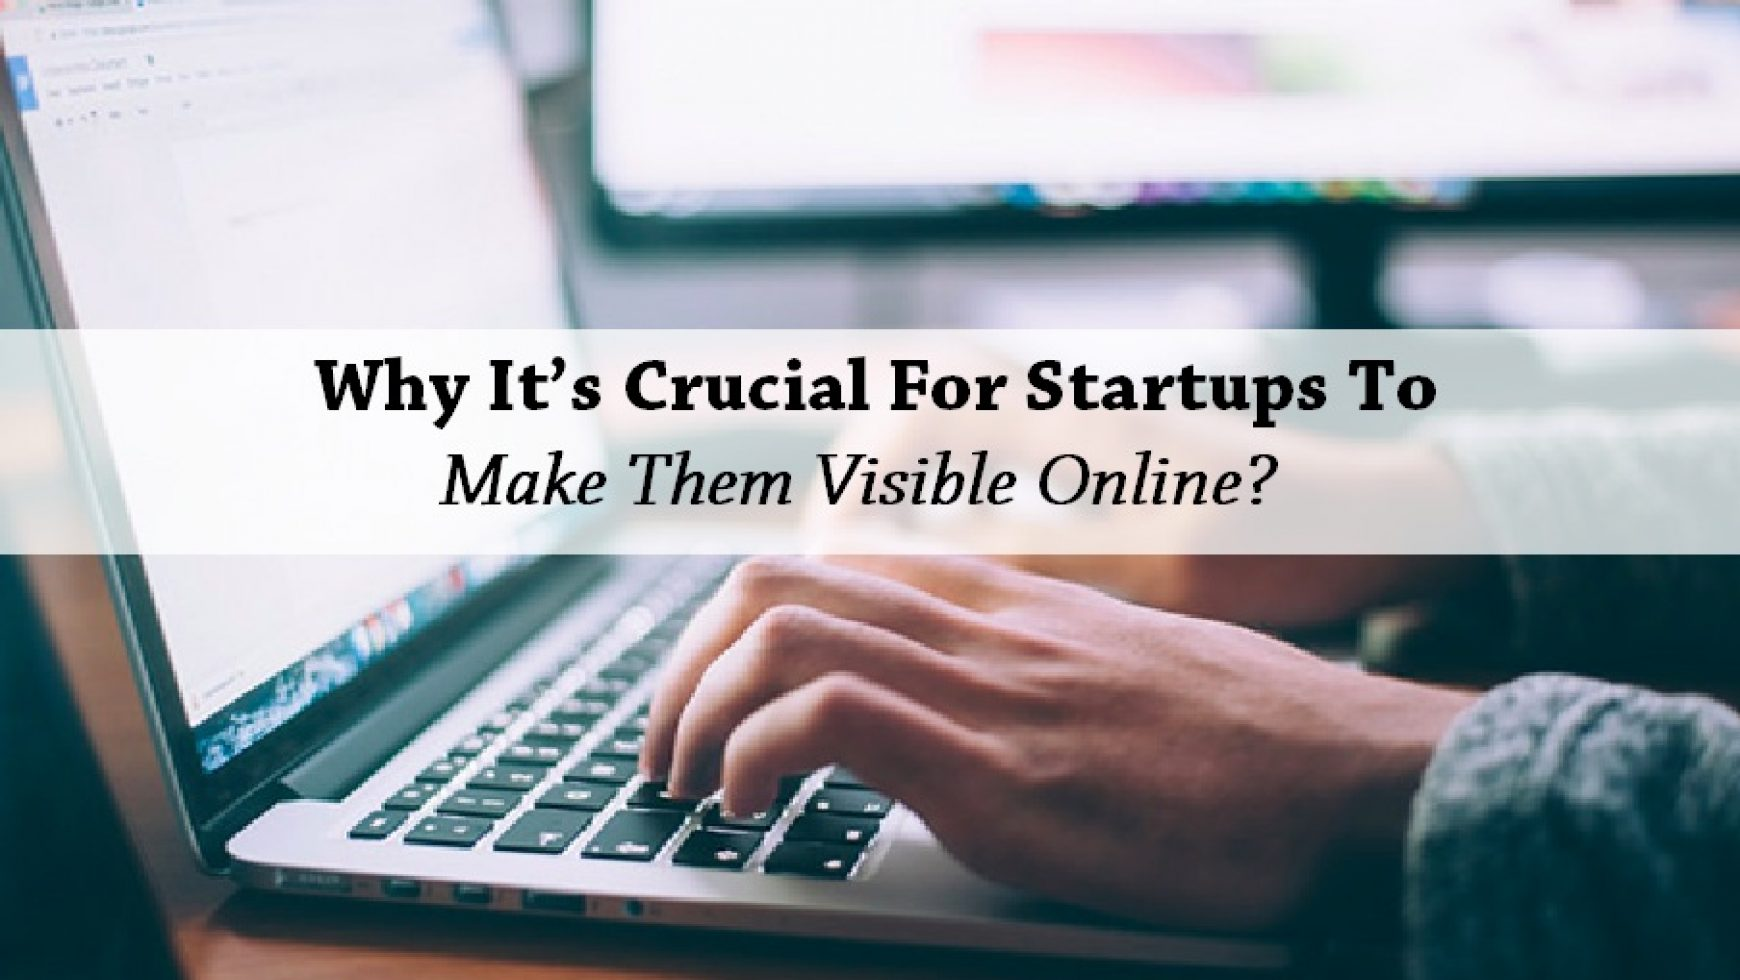 Why It's Crucial For Startups To Make Them Visible Online?